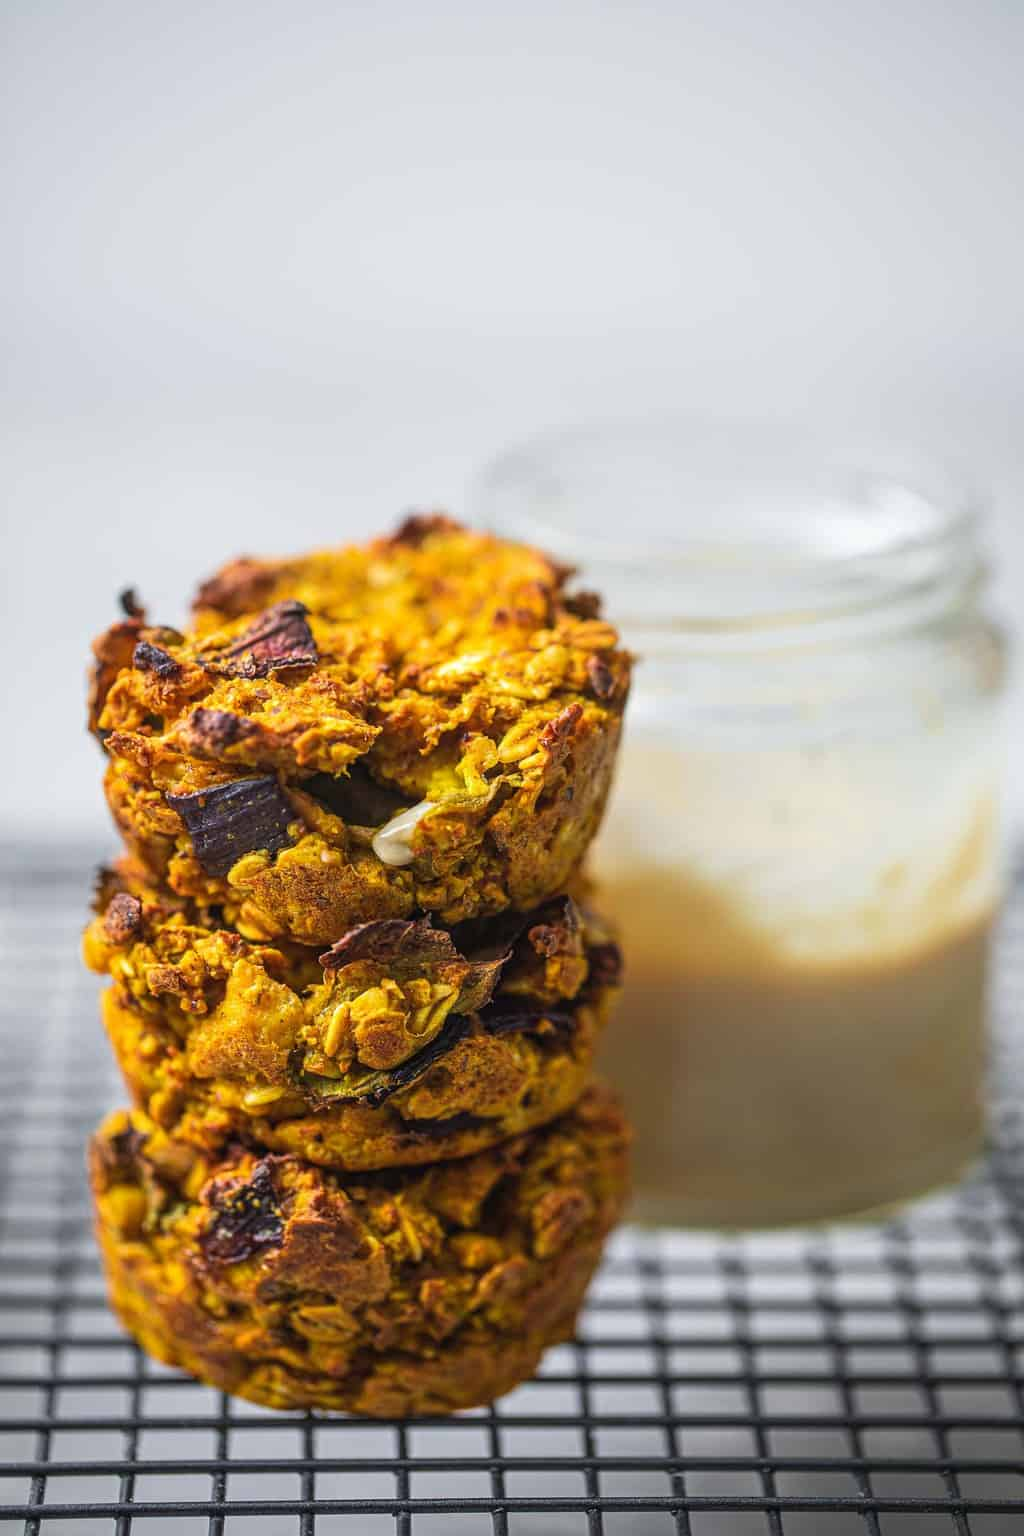 Oat and tofu vegan 'egg' muffins on a cooling rack next to a jar of tahini